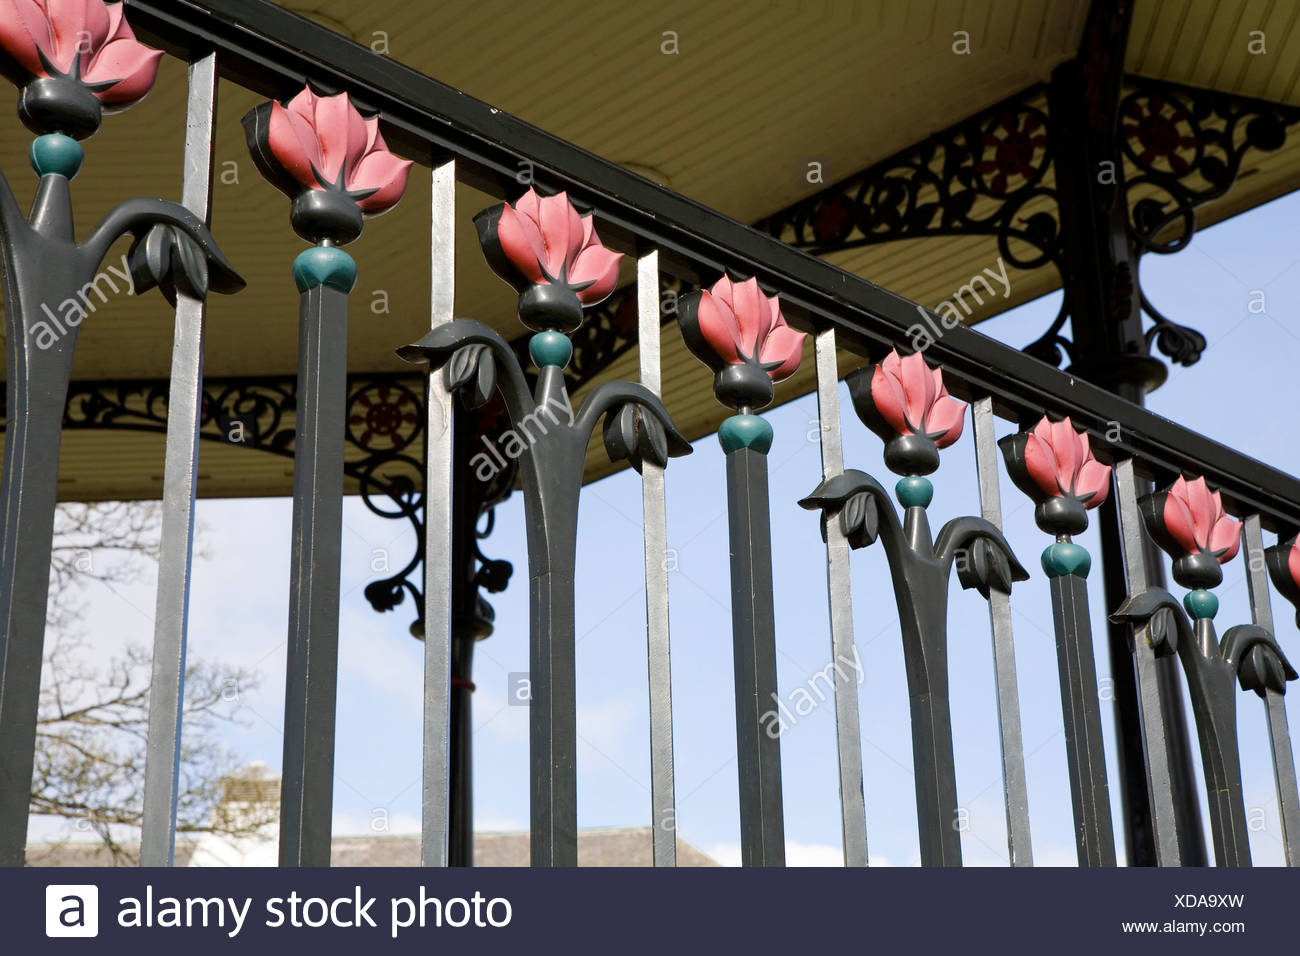 England, Derbyshire, Buxton, floral wrought-iron bandstand railings in Pavilion Gardens - Stock Image